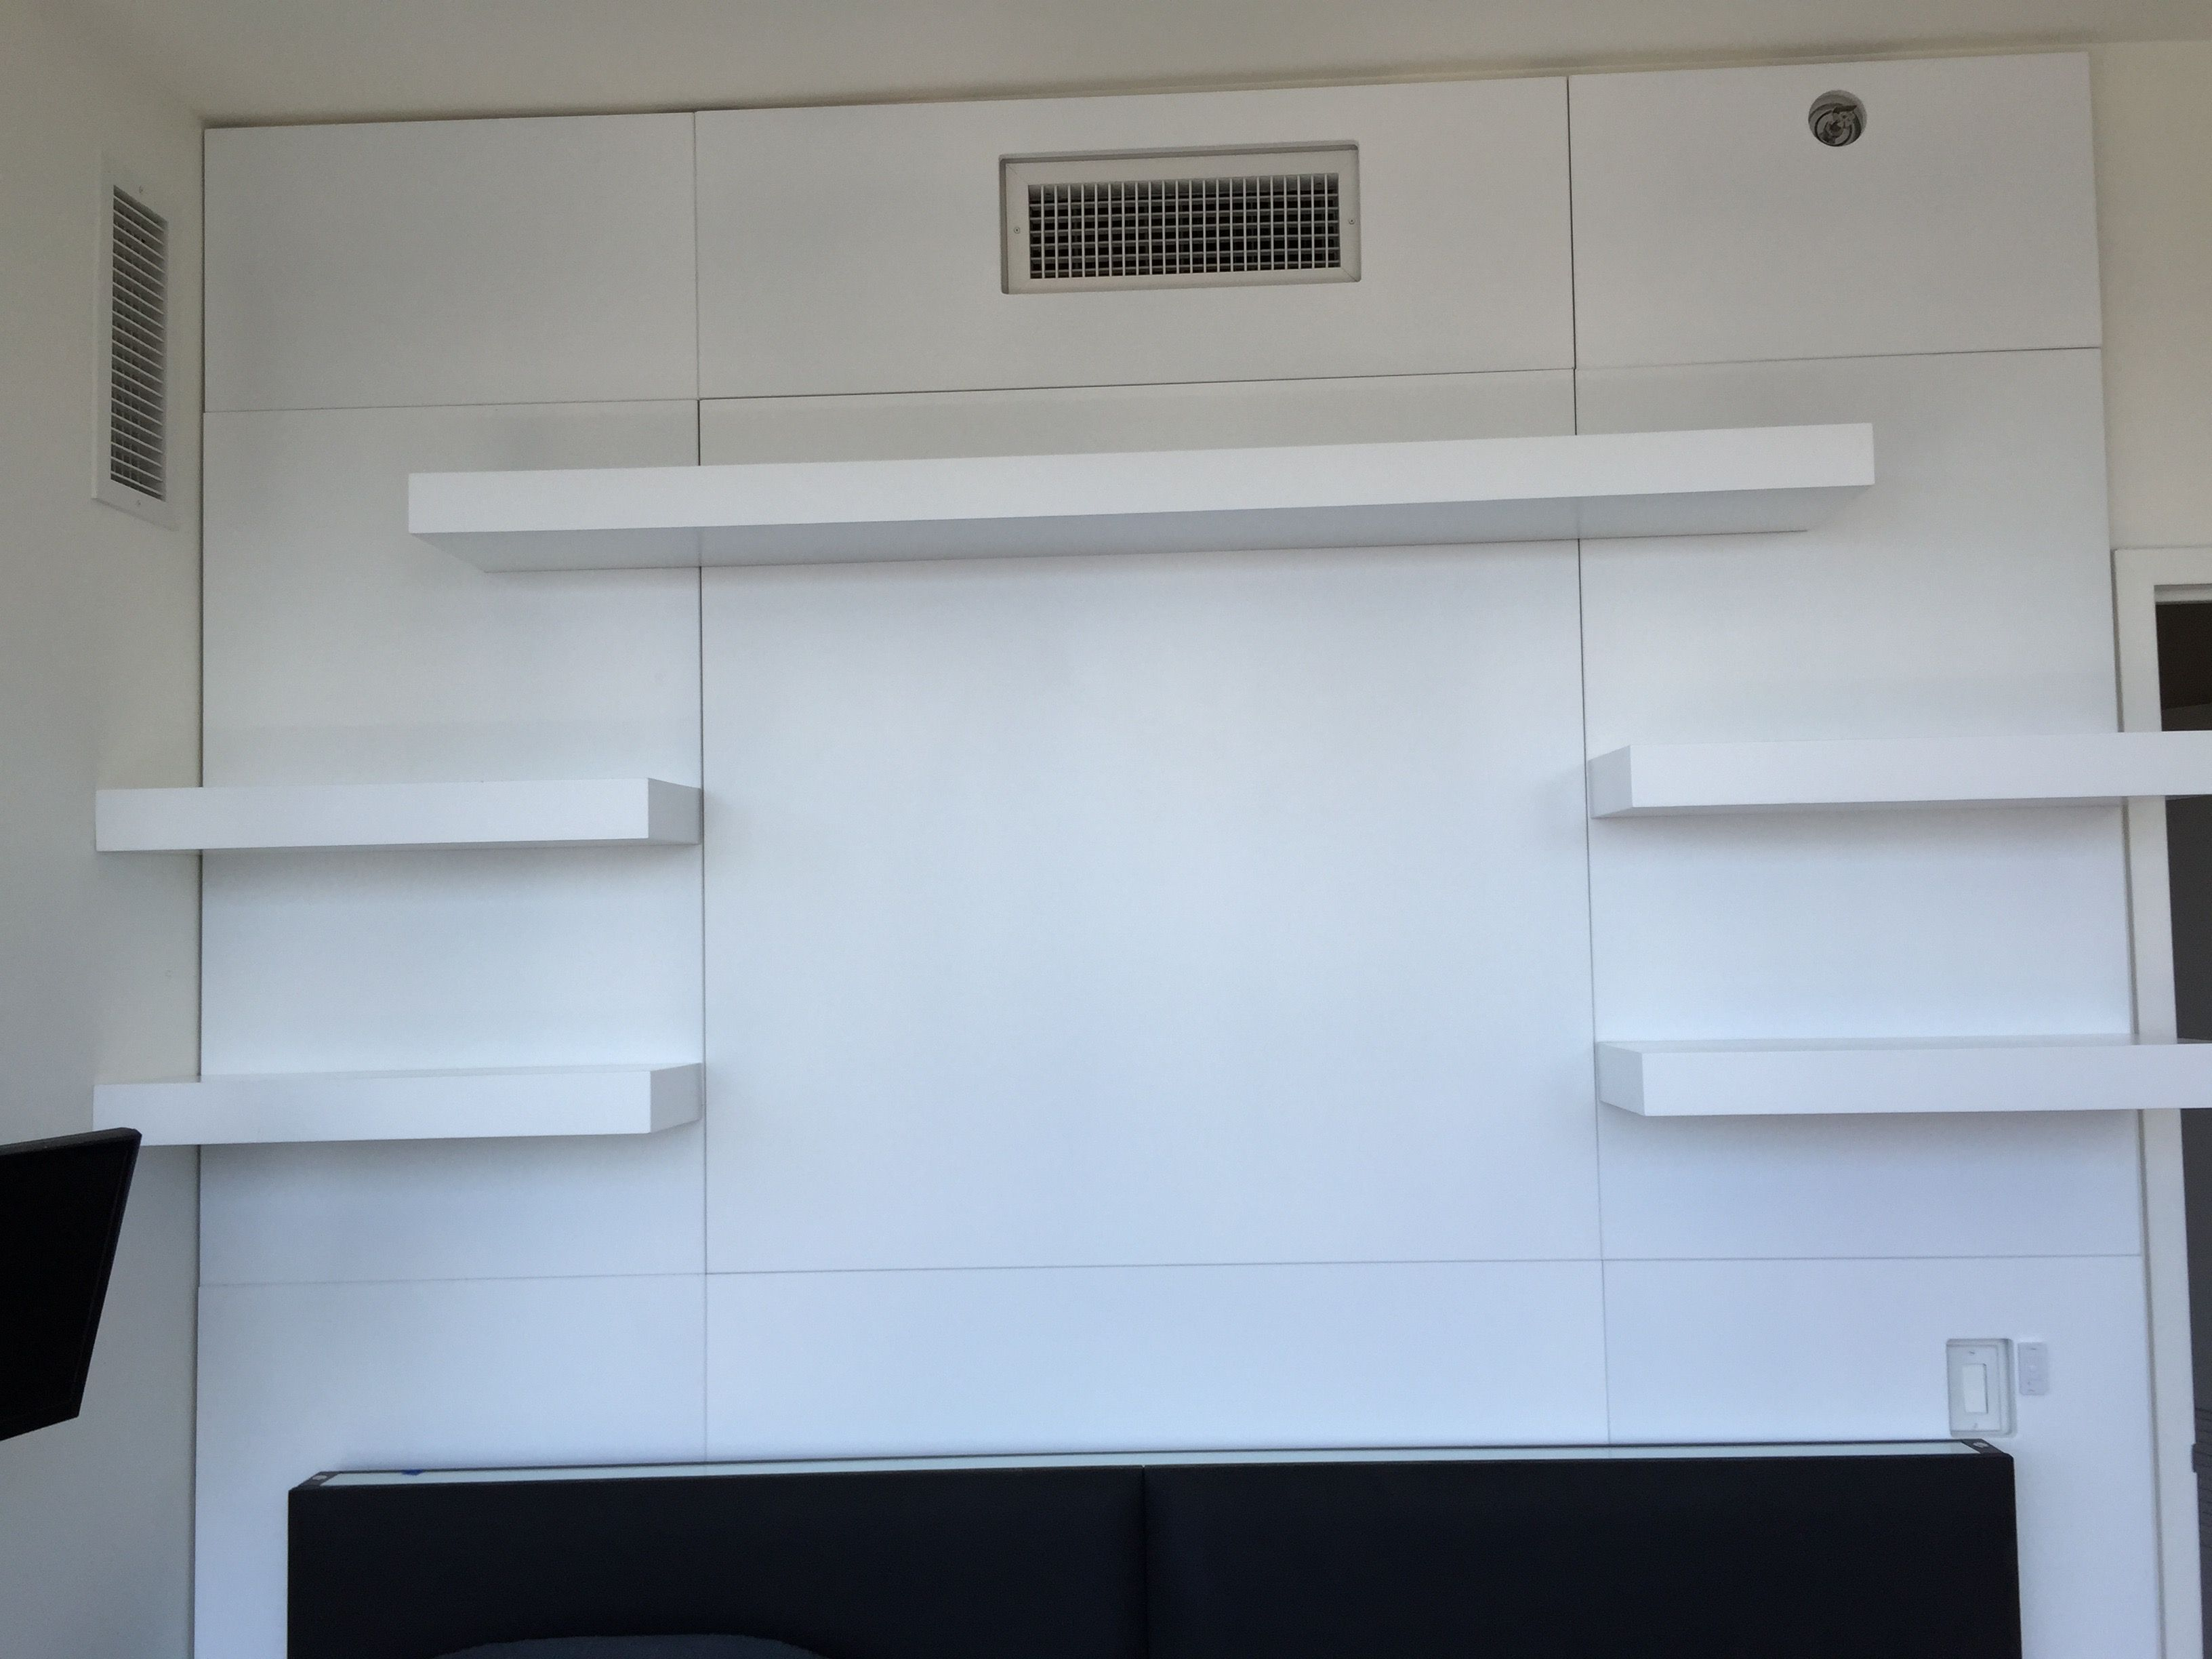 hand crafted wall unit with custom paneling and floating shelves made interesting shelving units open between rooms diy secret shelf small dvd player bookshelf gun case bhs flush